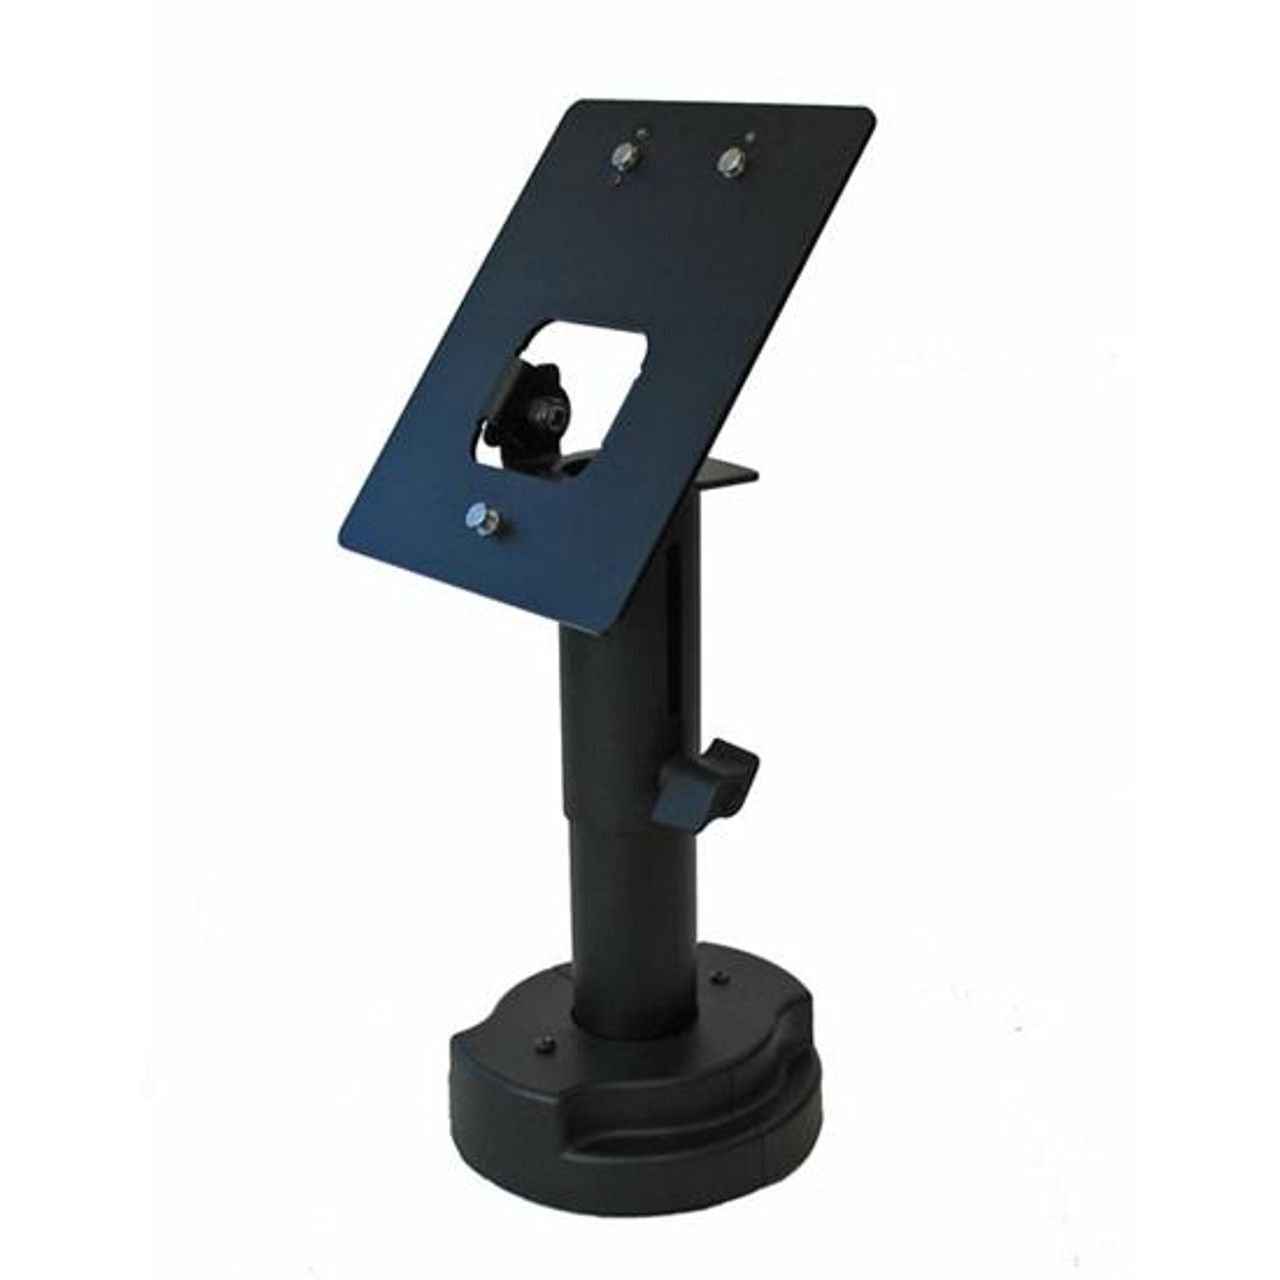 Swivel Stands Credit Card Stand Telescoping Pedestal Hypercom L4250